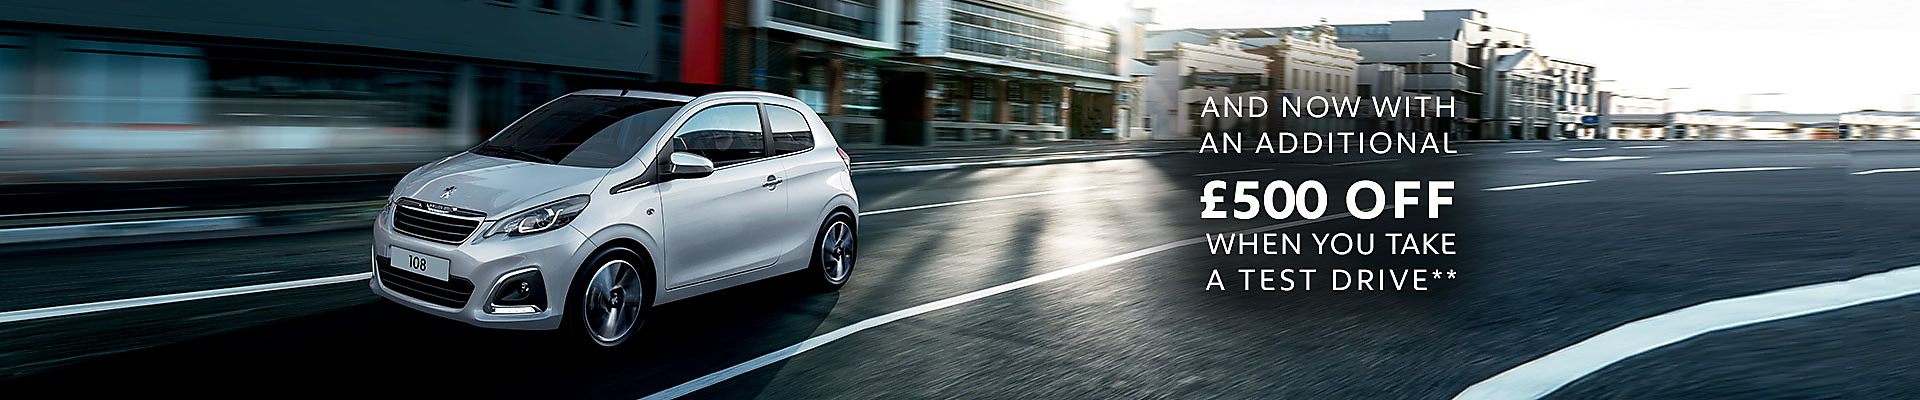 1920 Peugeot 108 TOP! save £500 Drive Test Customer Saving